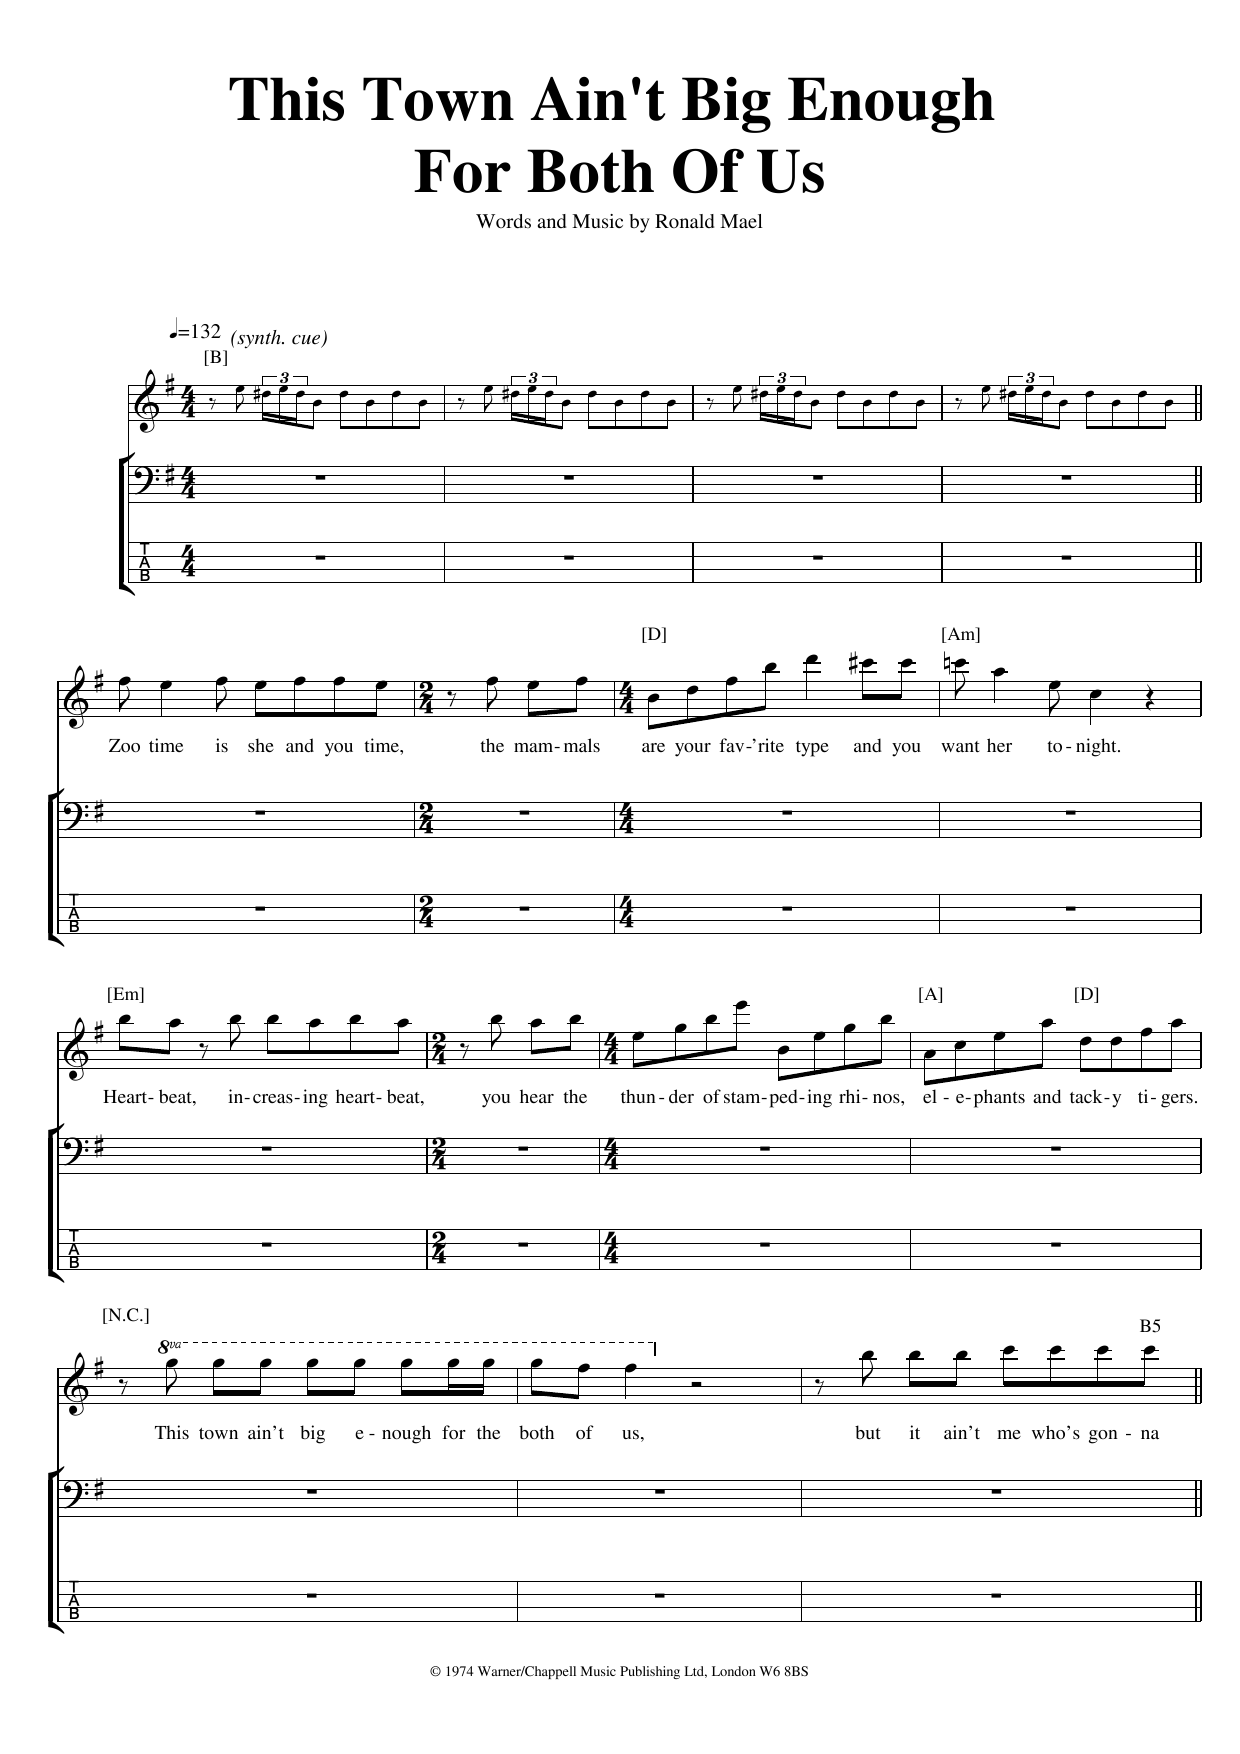 This Town Ain't Big Enough For Both Of Us (Bass Guitar Tab)